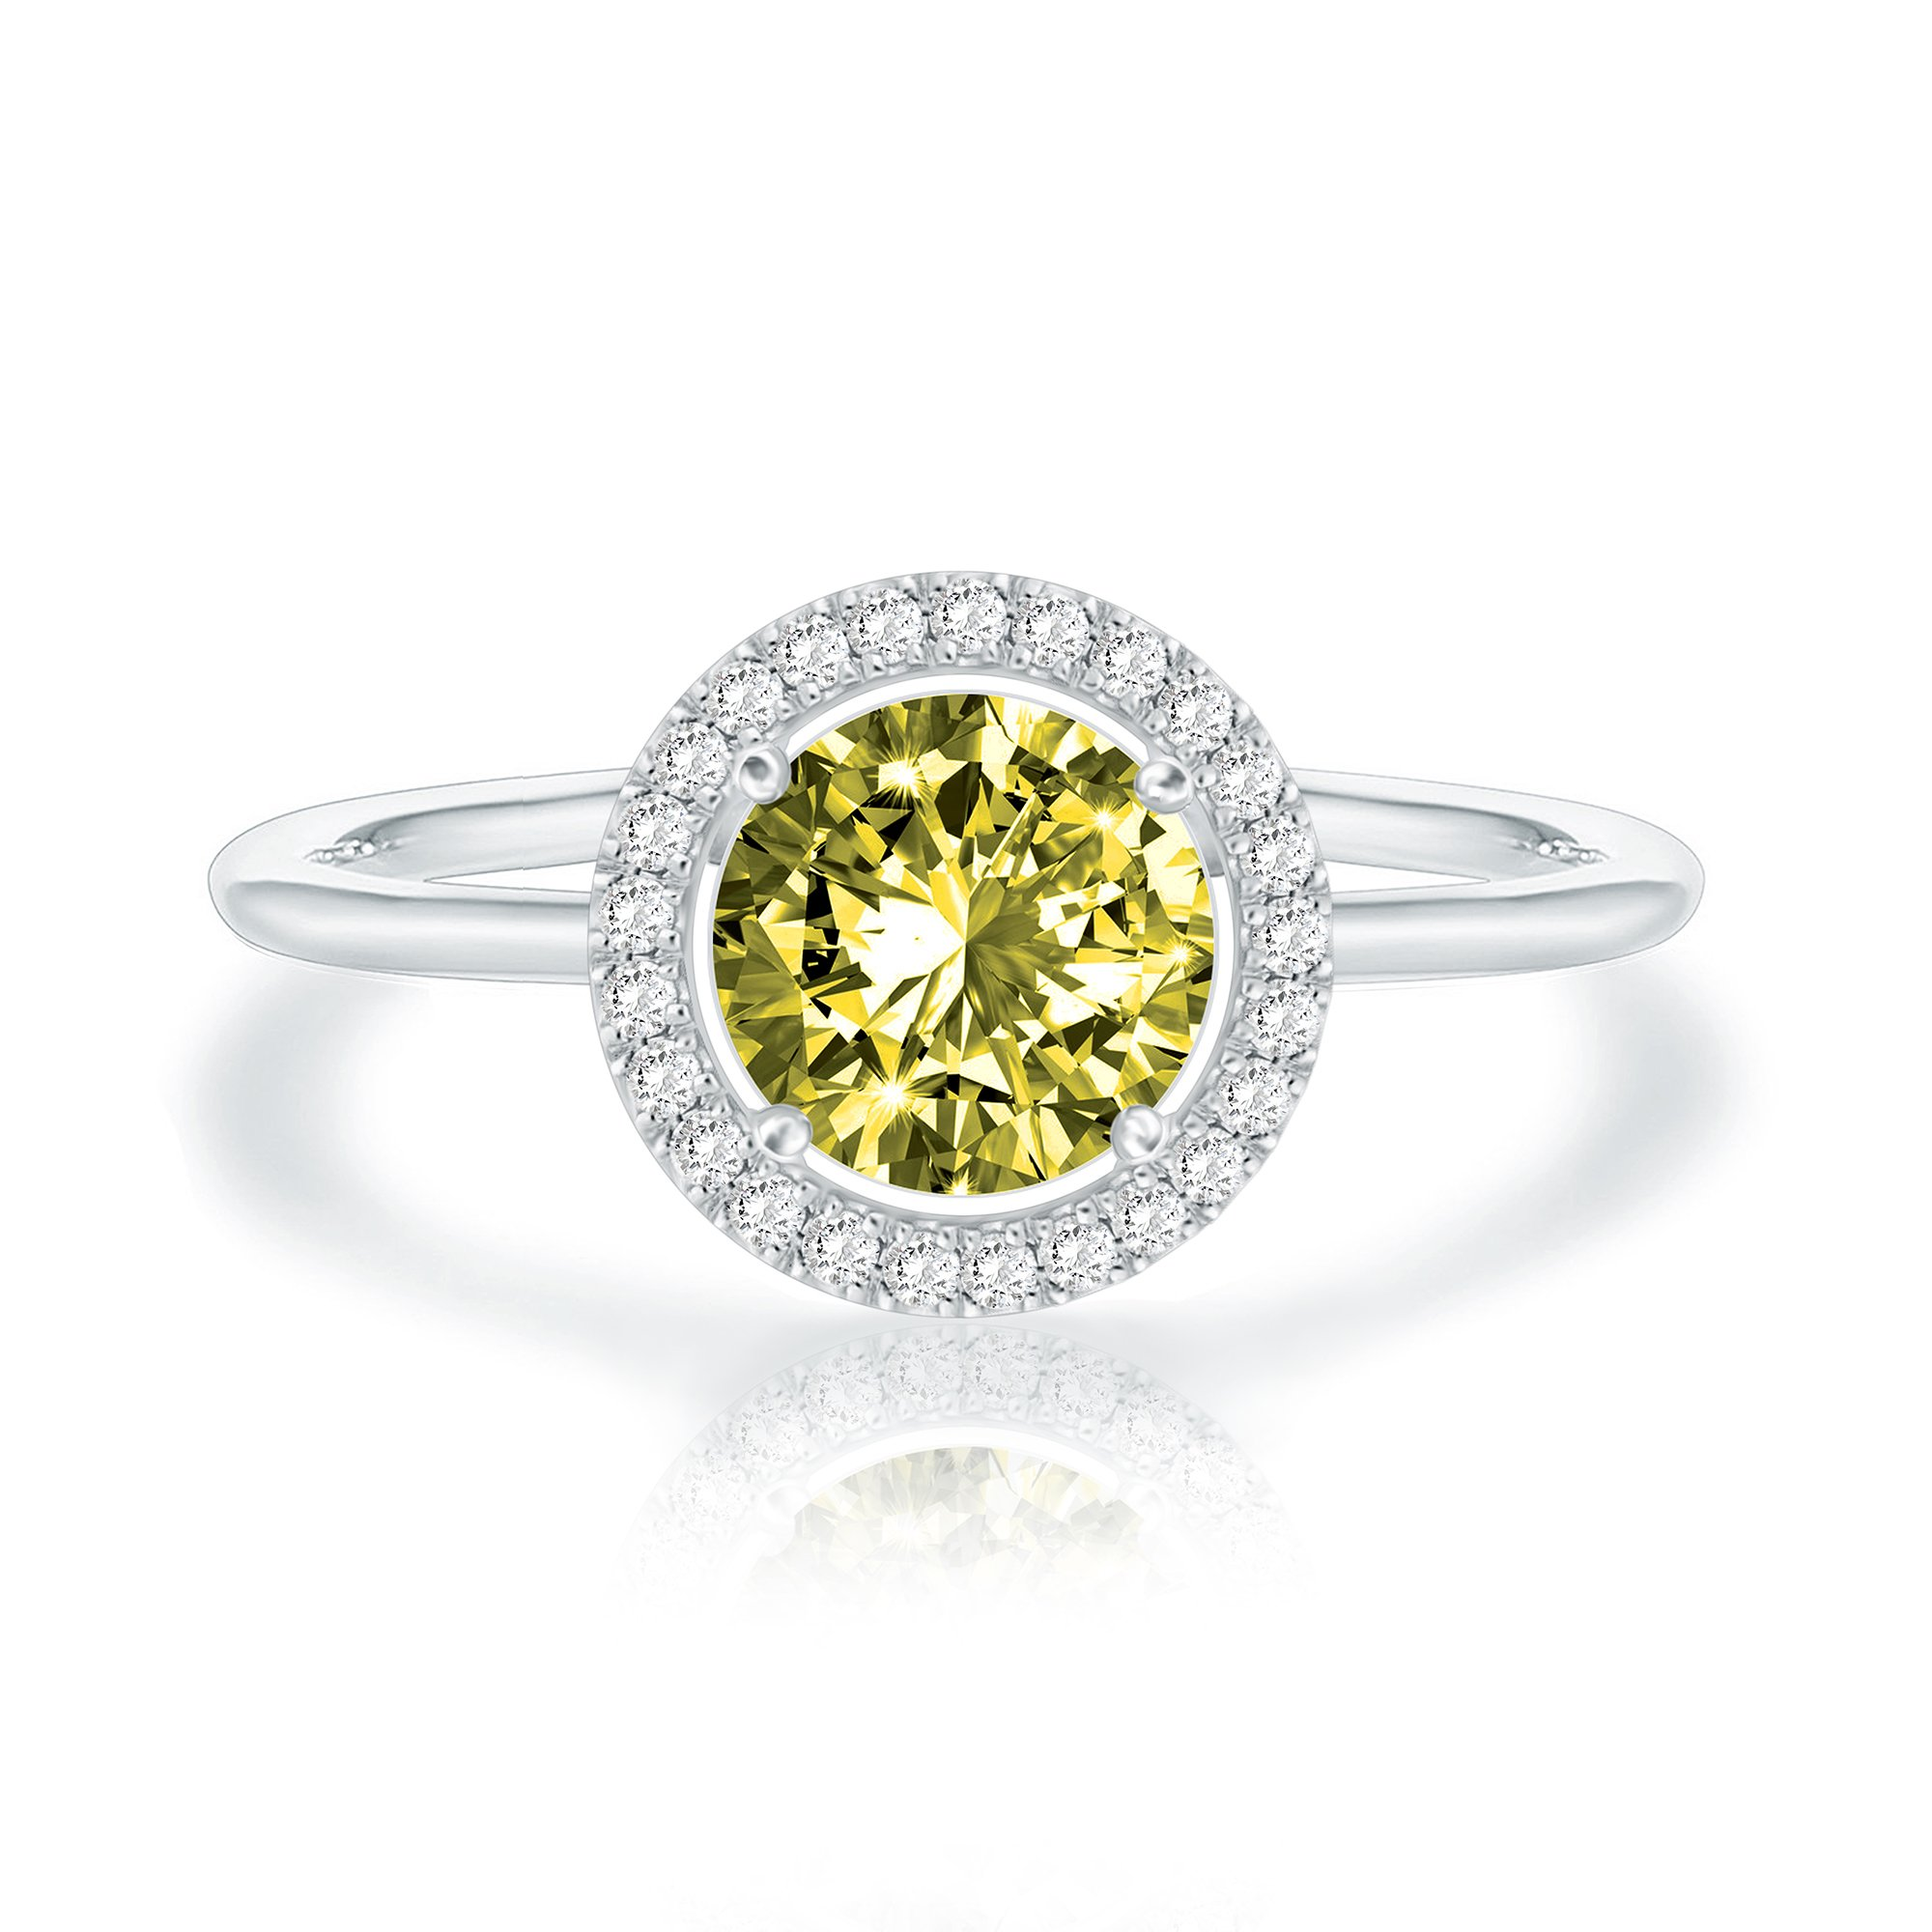 PAVOI 14K Gold Plated SWAROVSKI Crystal Birthstone Ring - Adjustable Stackable Ring August